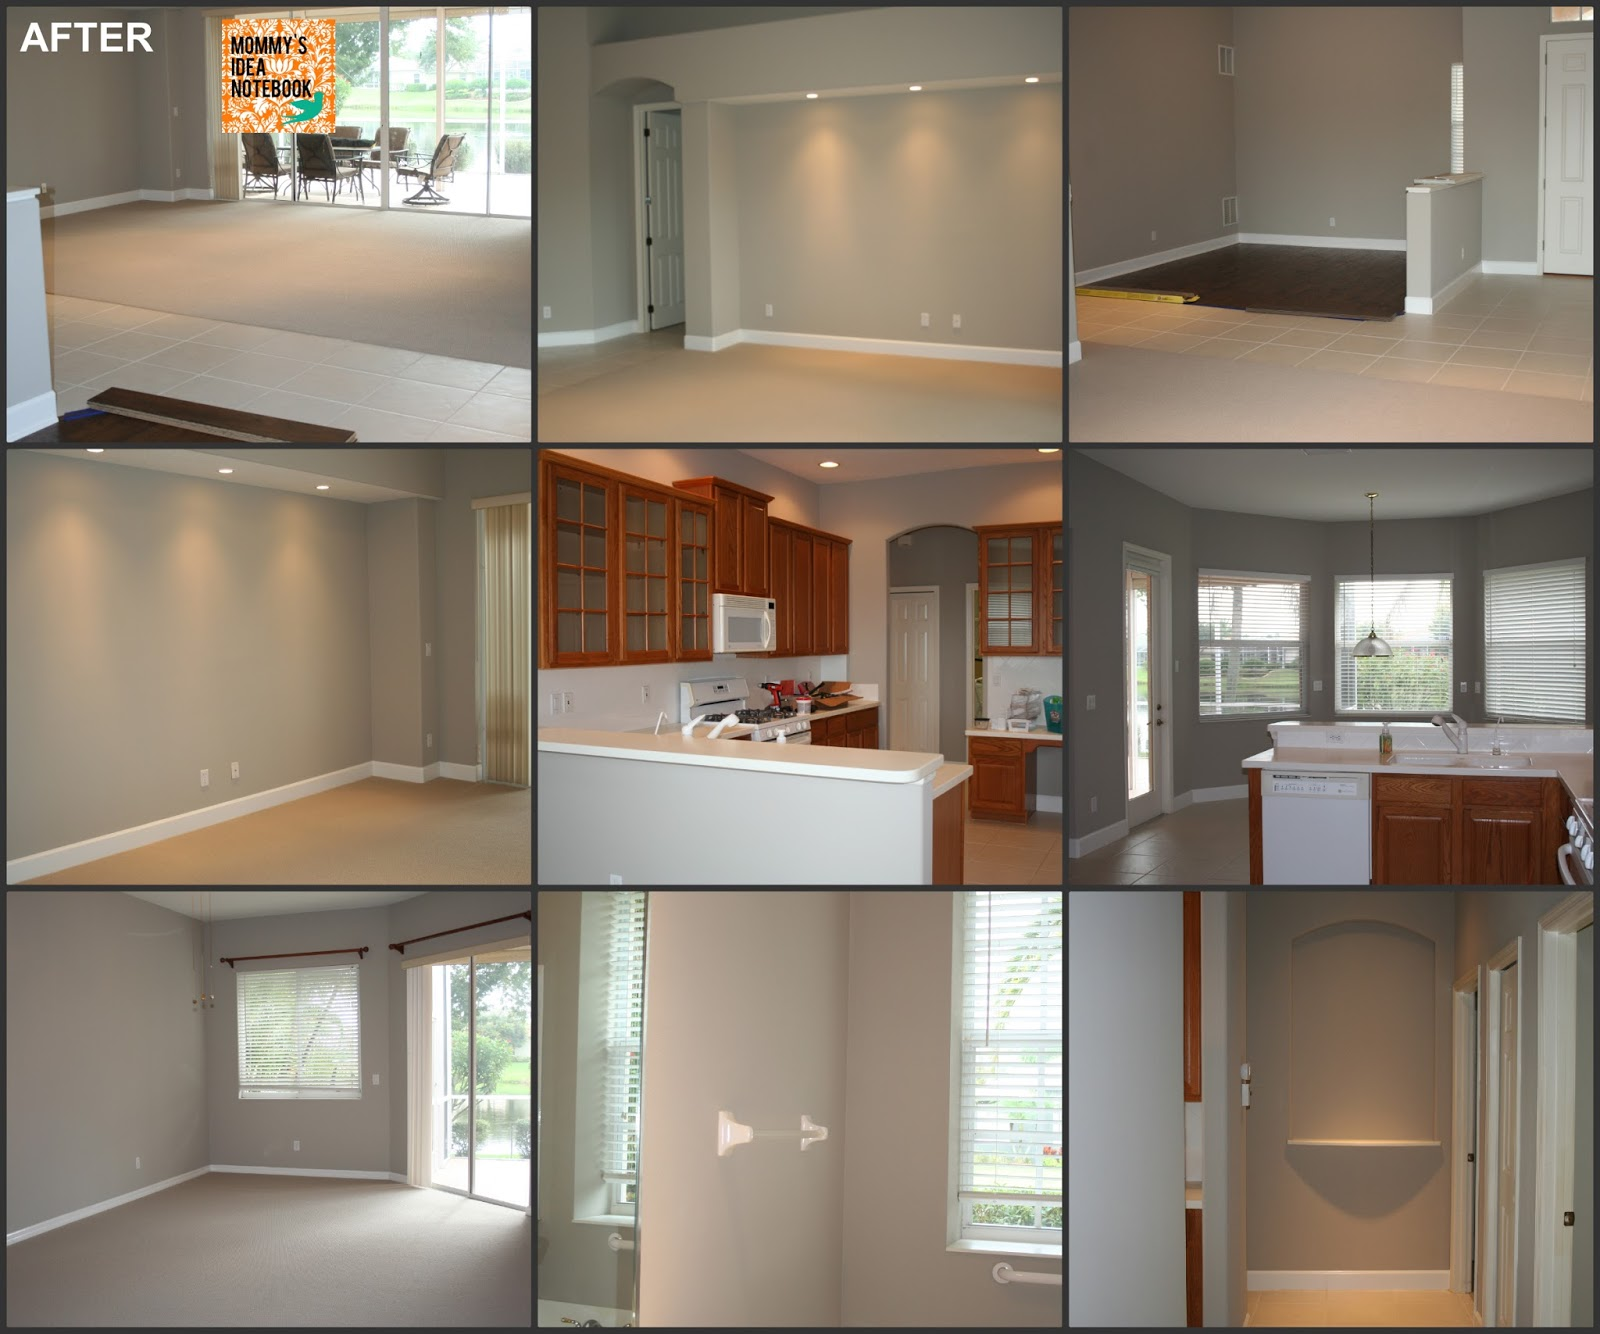 dunham design company the perfect gray paint color with floors to match. Black Bedroom Furniture Sets. Home Design Ideas